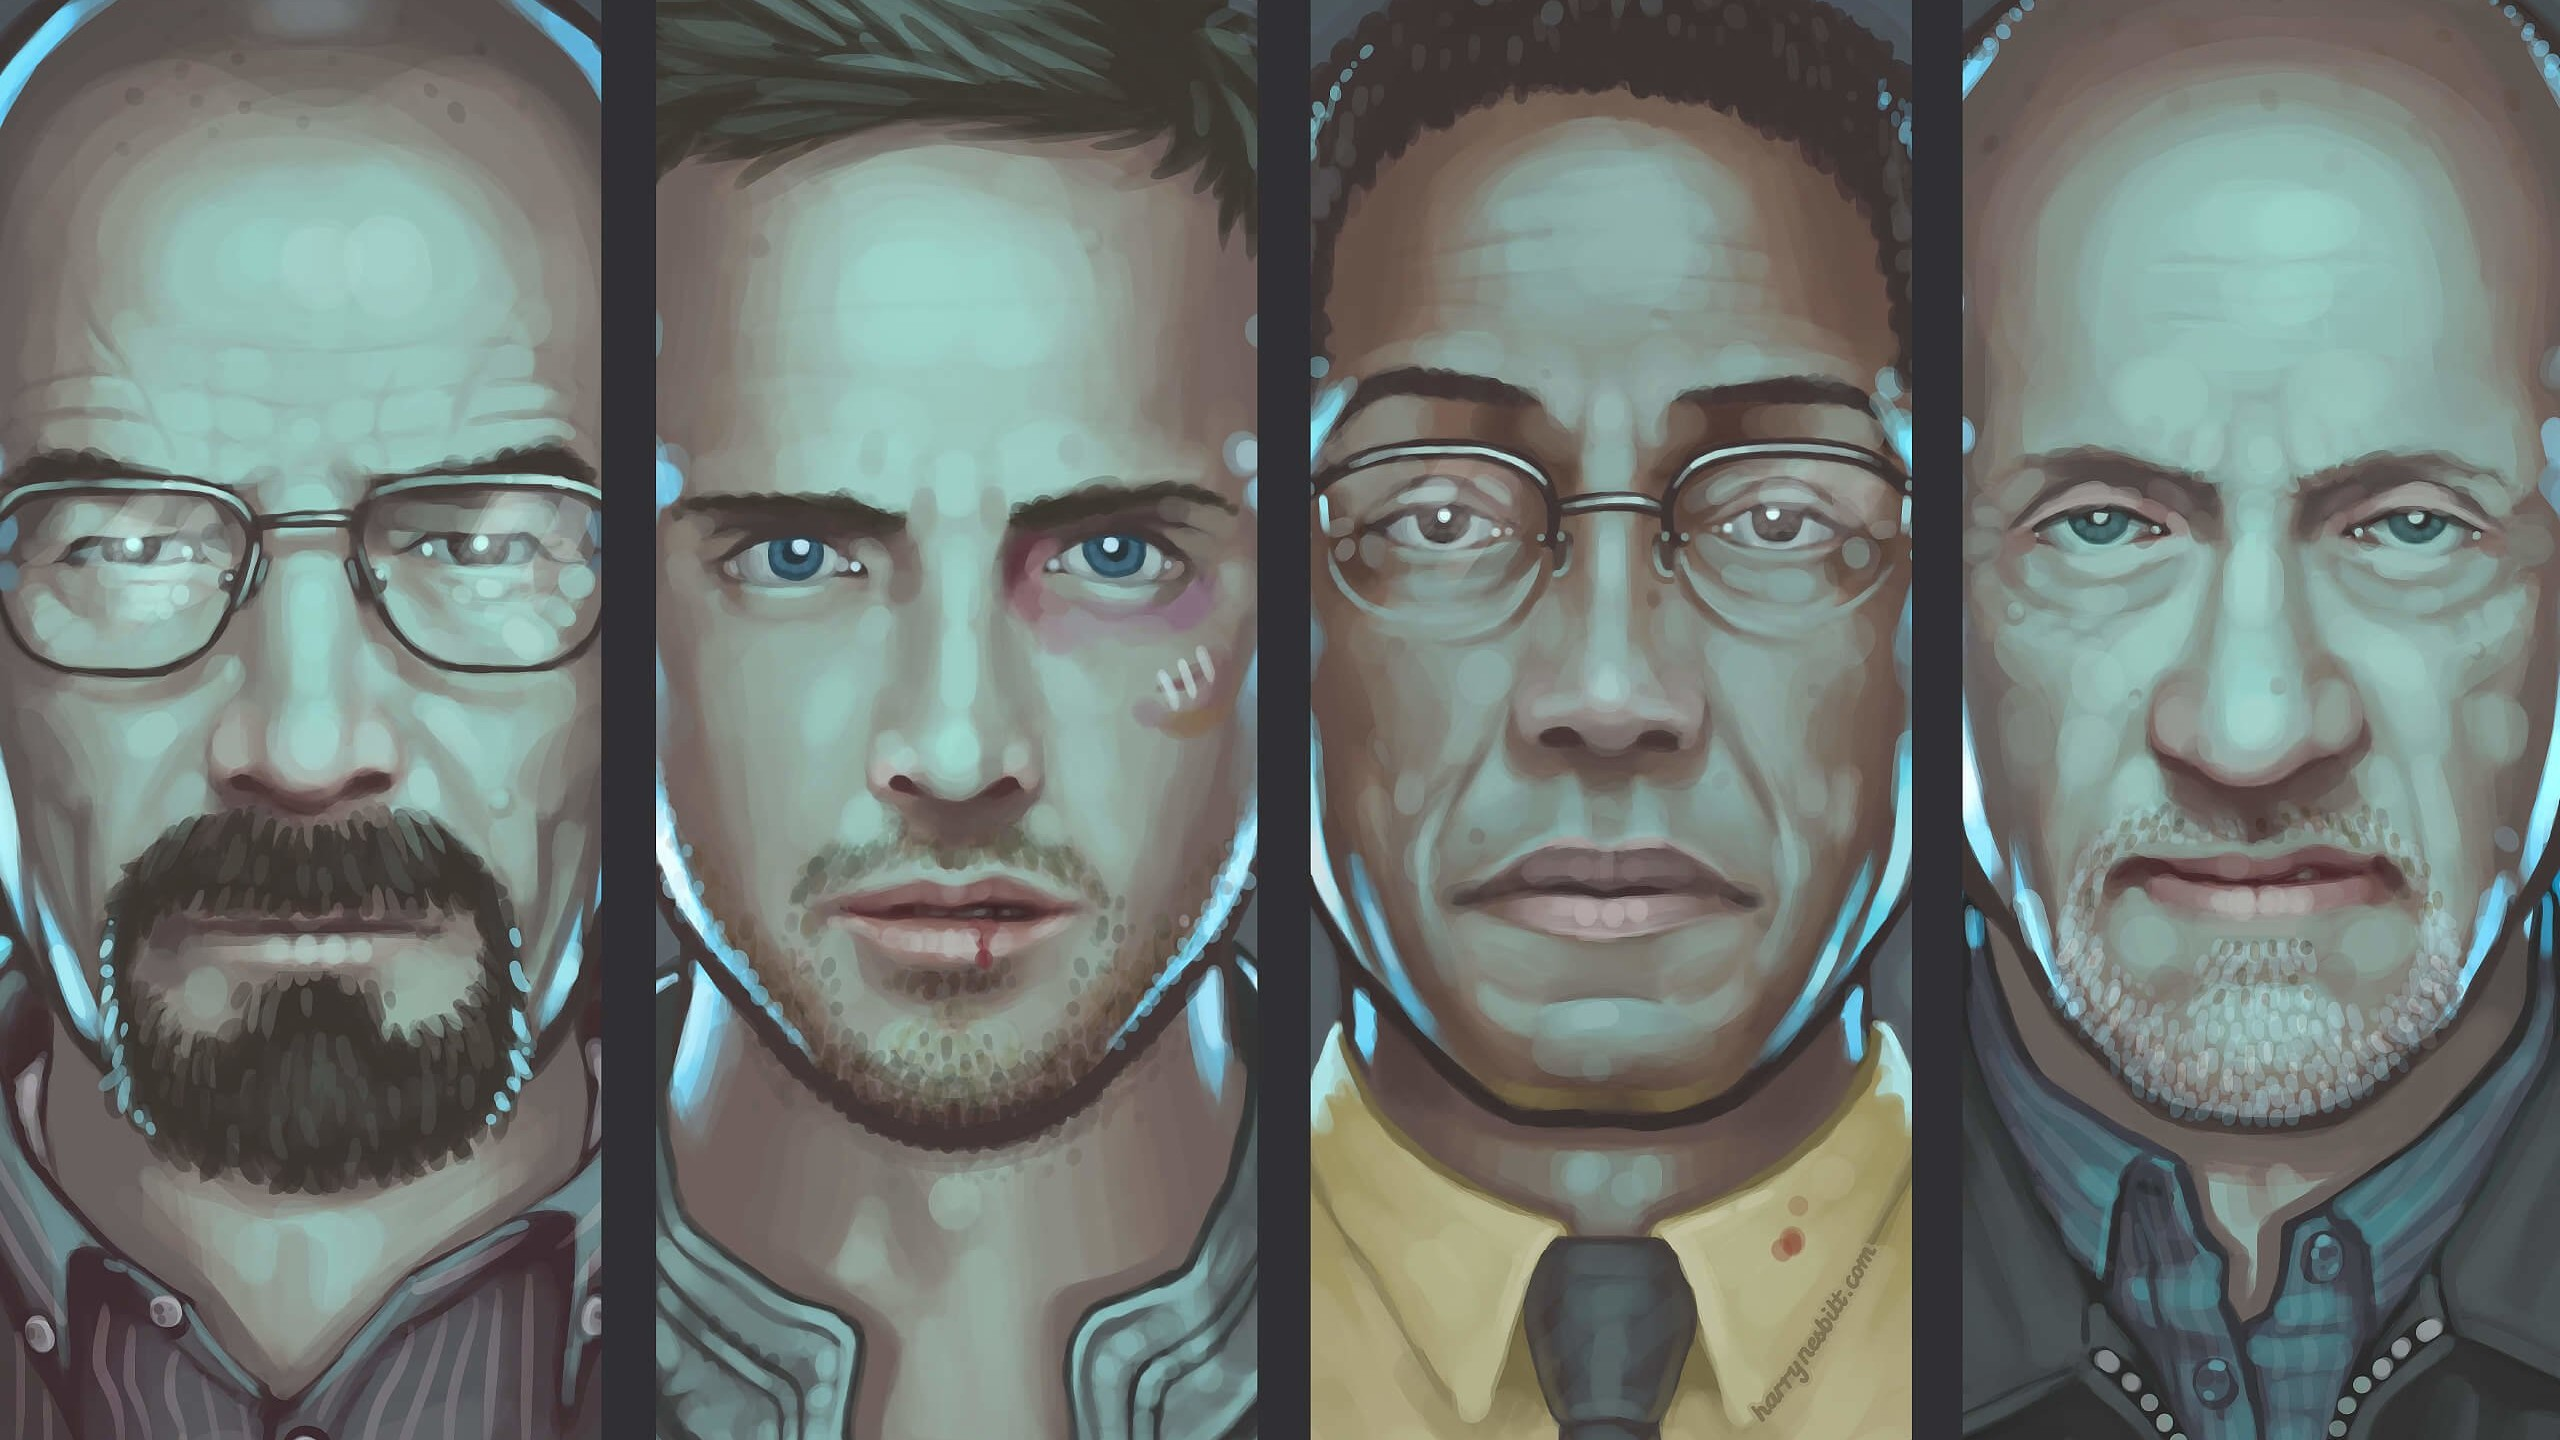 Breaking Bad Characters Wallpaper for Social Media YouTube Channel Art